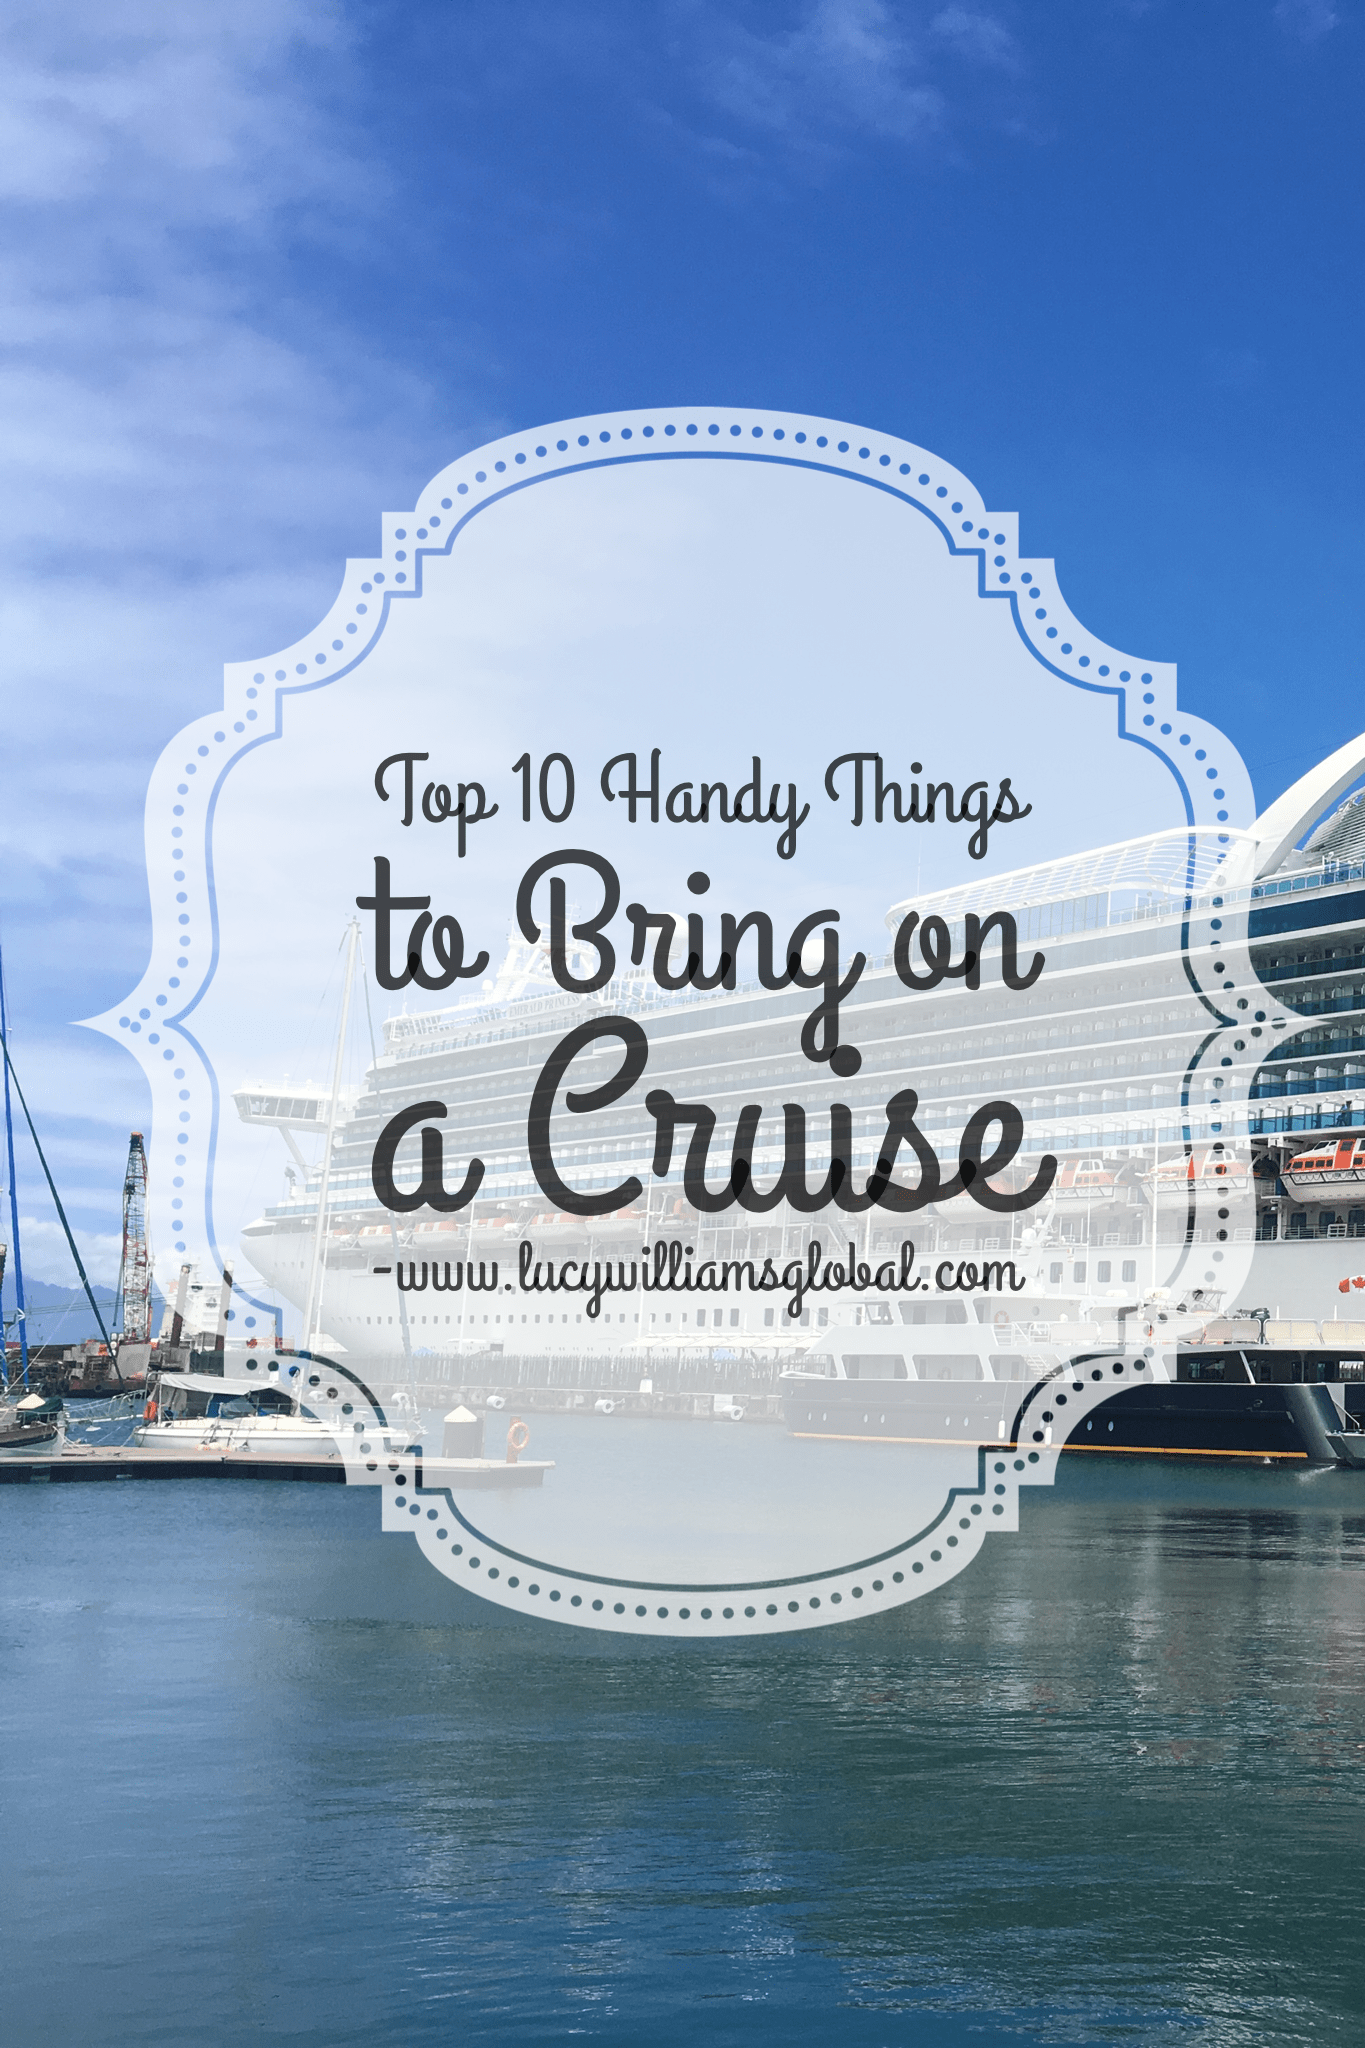 top 10 handy things to bring on a cruise lucy williams. Black Bedroom Furniture Sets. Home Design Ideas